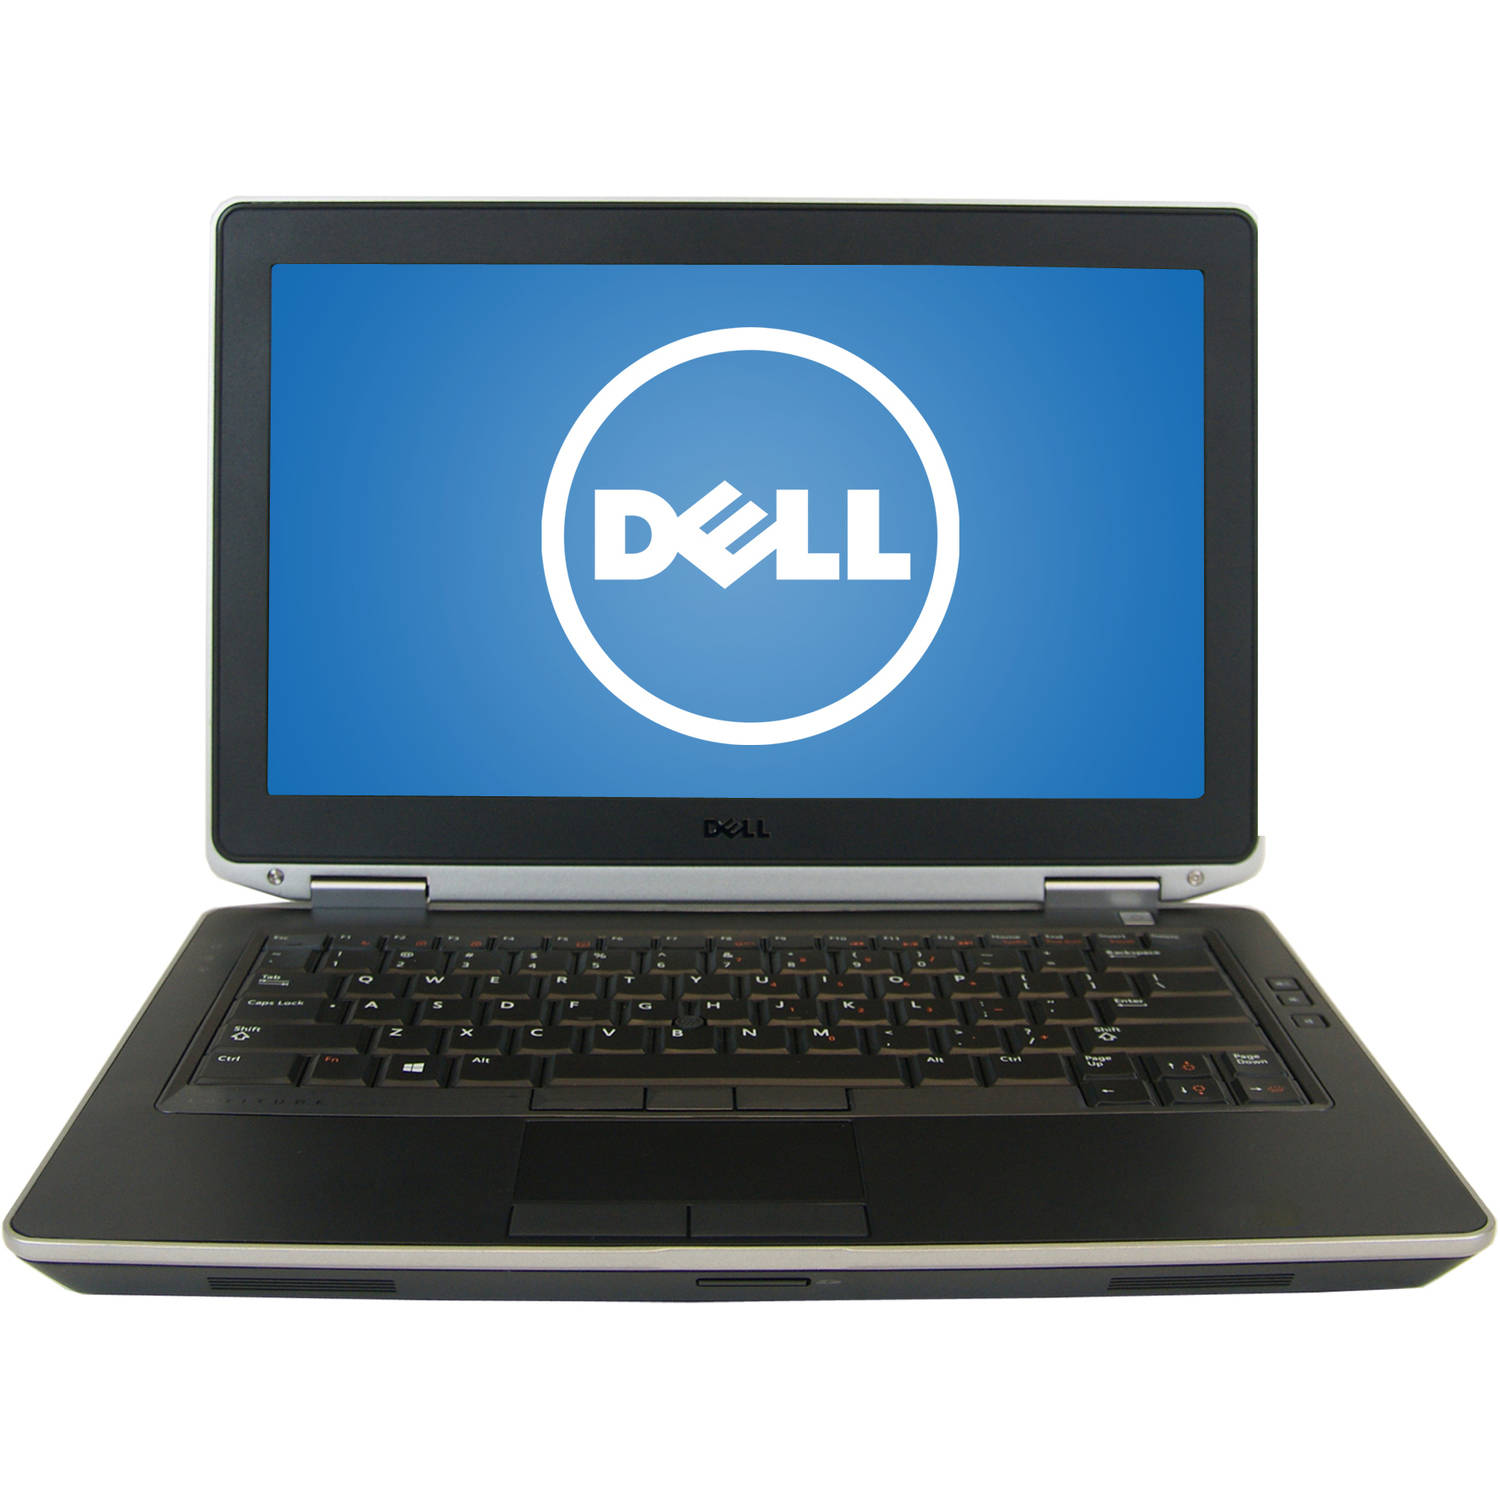 "Refurbished Dell 13.3"" Latitude E6330 Laptop PC with Intel Core i5-3320M Processor, 8GB Memory, 750GB Hard Drive and Windows 10 Pro"